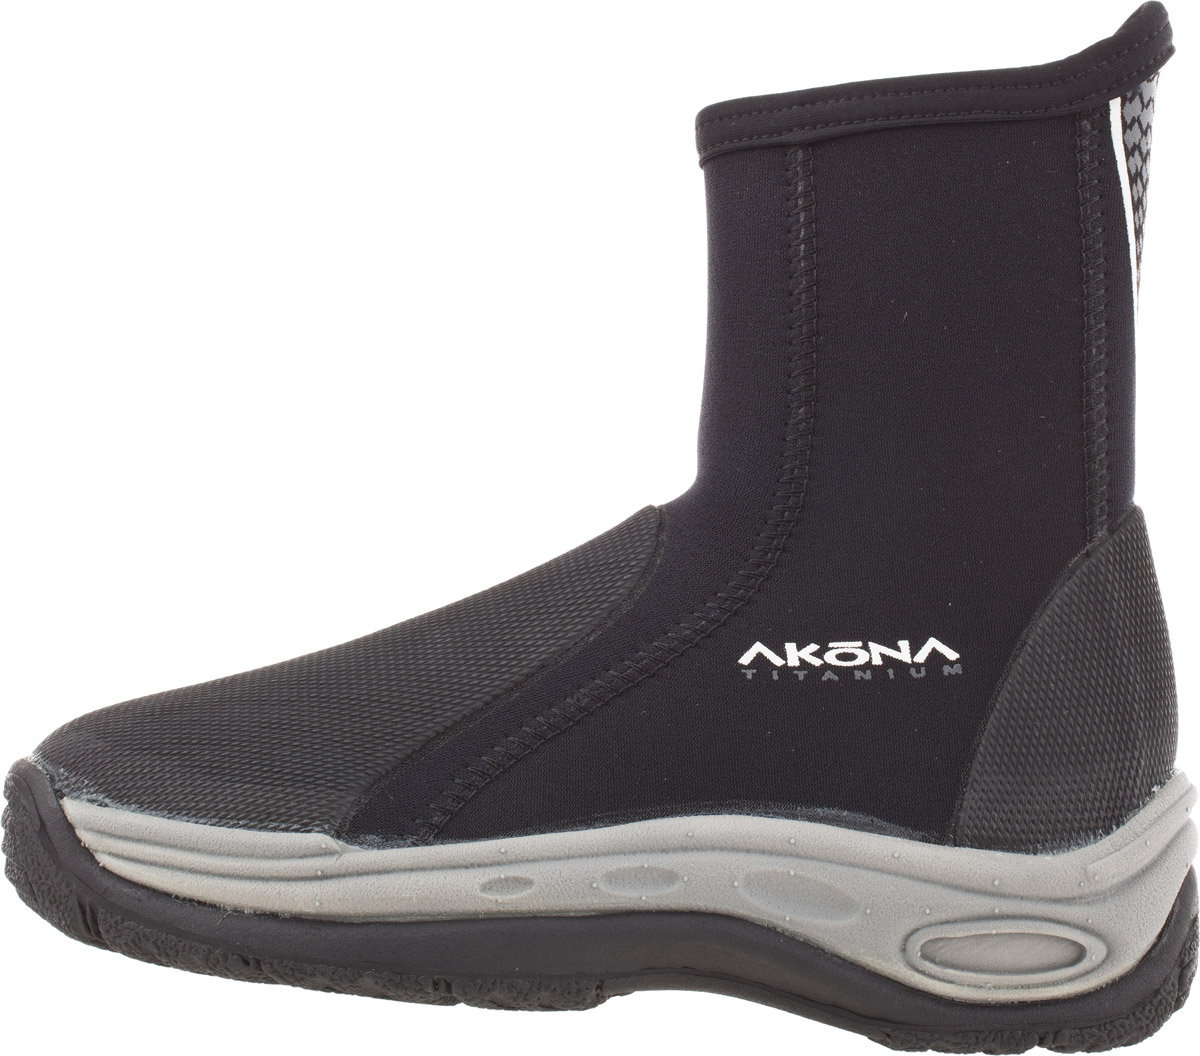 Akona Deluxe 3.5mm Molded Sole Boot